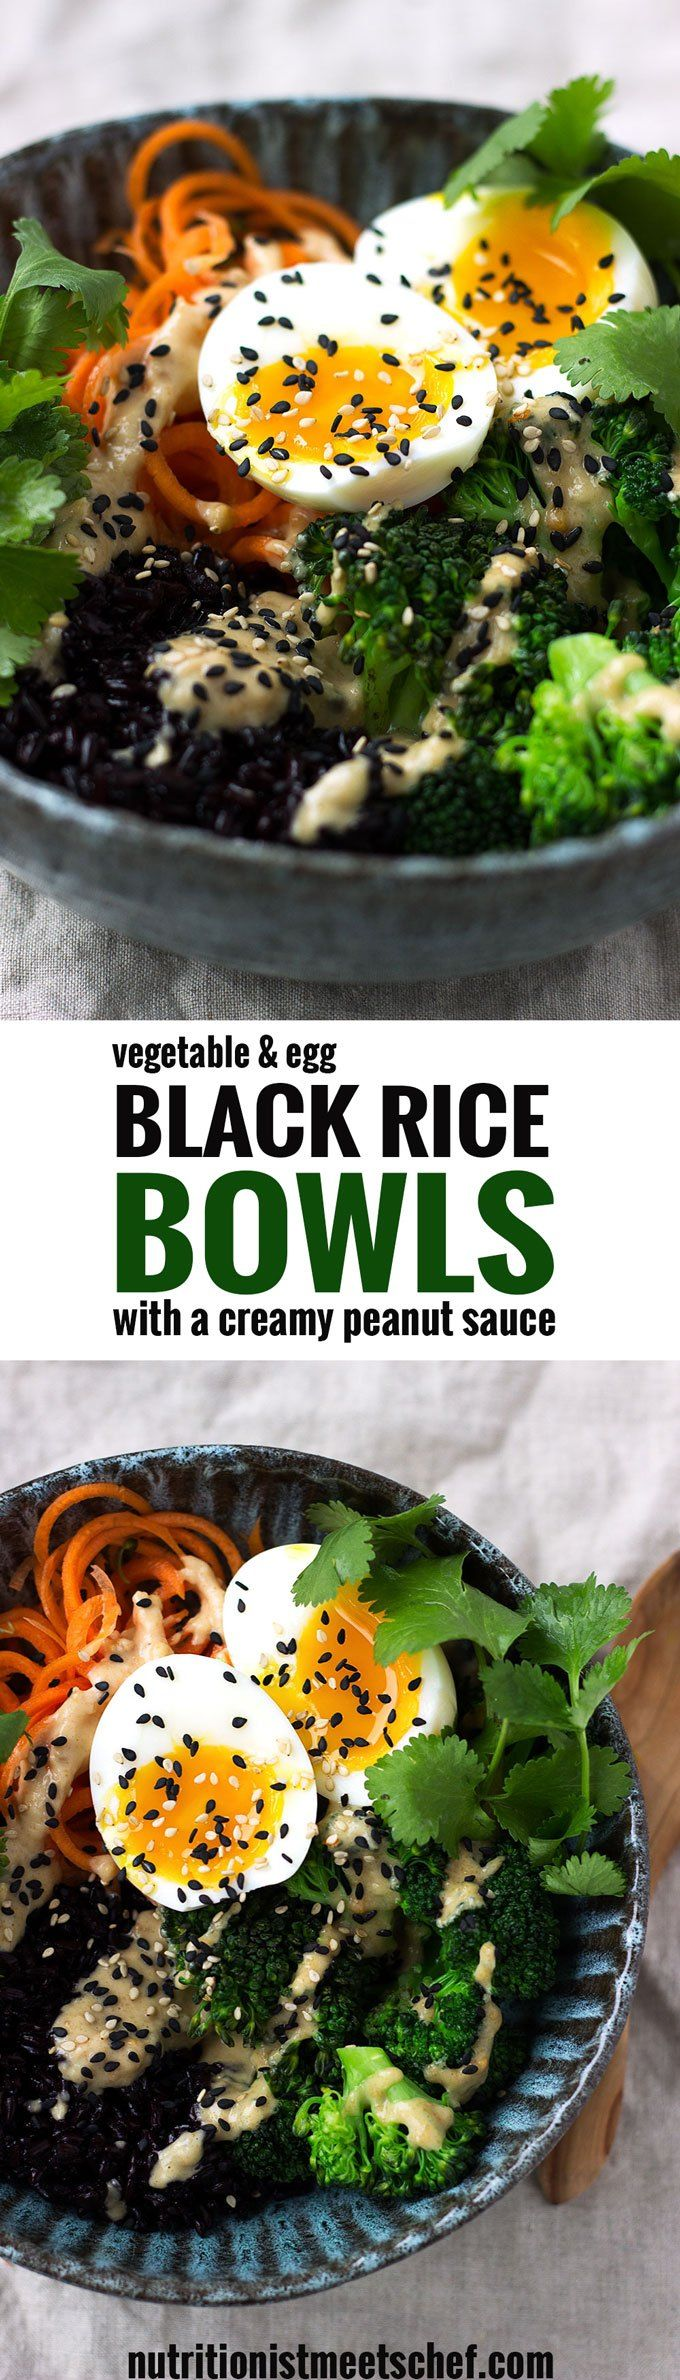 Black Rice, Vegetable and Egg Bowls with Peanut Sauce! An effortless meal that is packed with flavour and nutrients! Get the recipe at nutritionistmeetschef.com